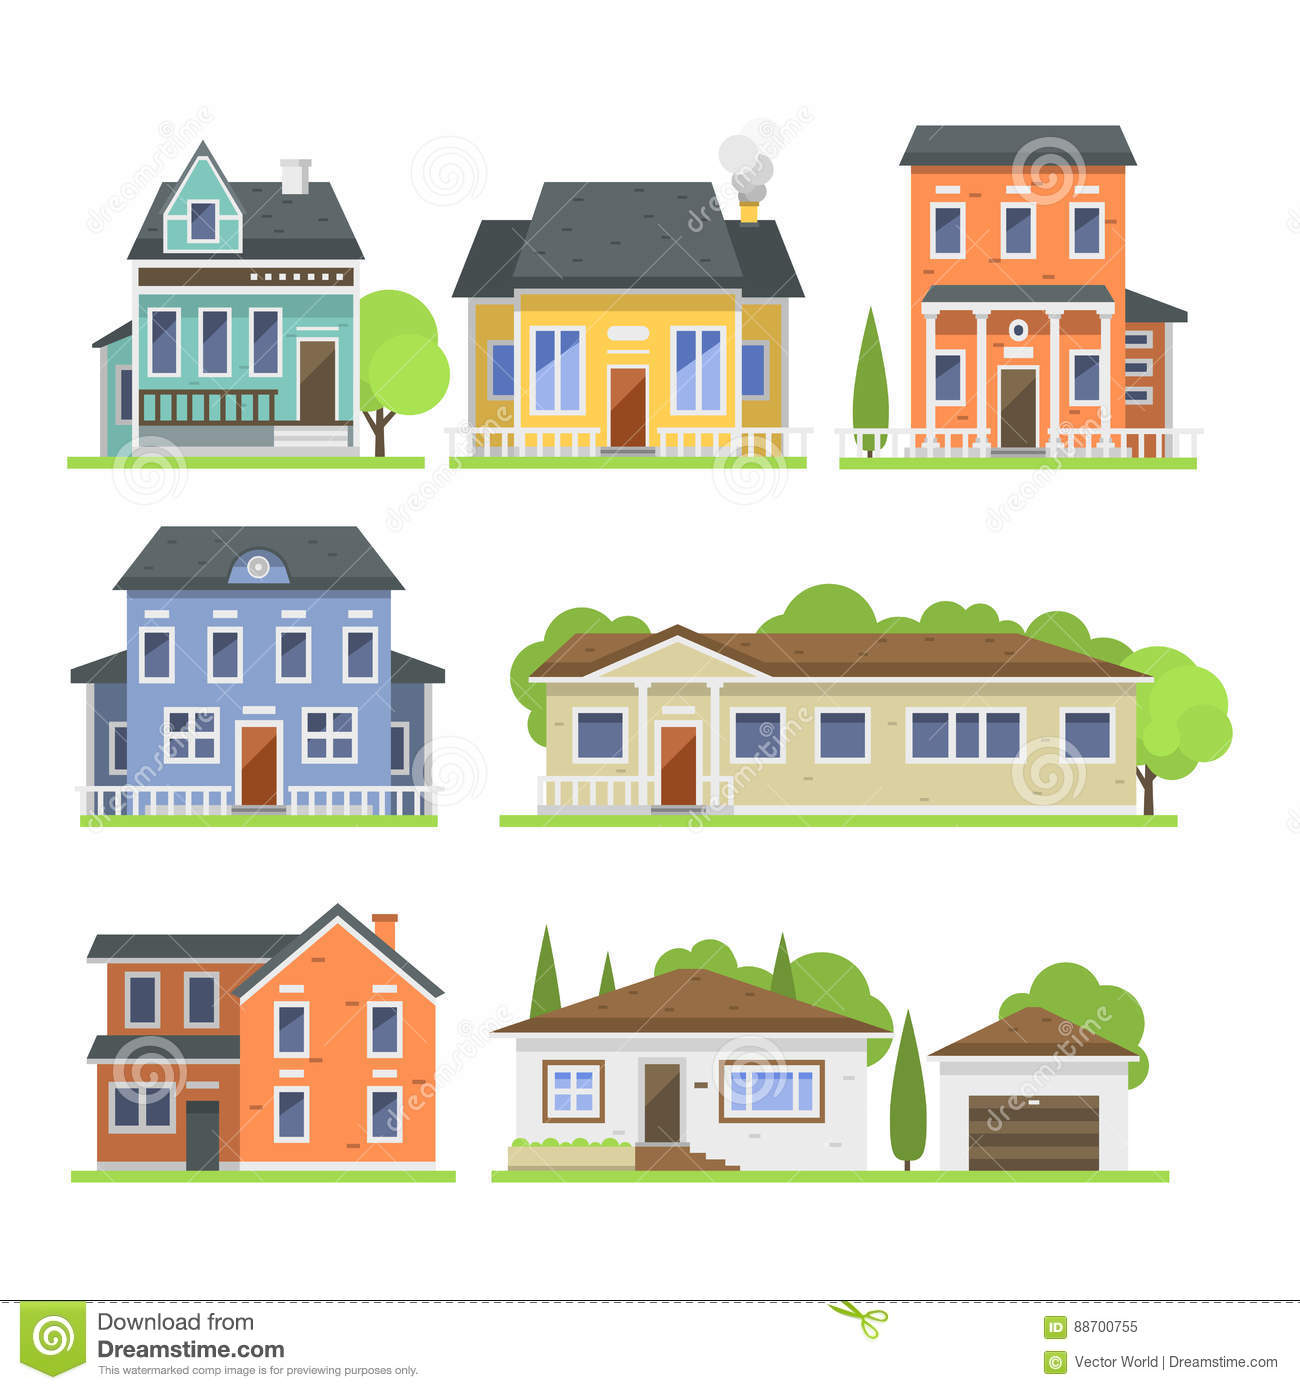 Residential gate design vector : Residential cartoons illustrations vector stock images